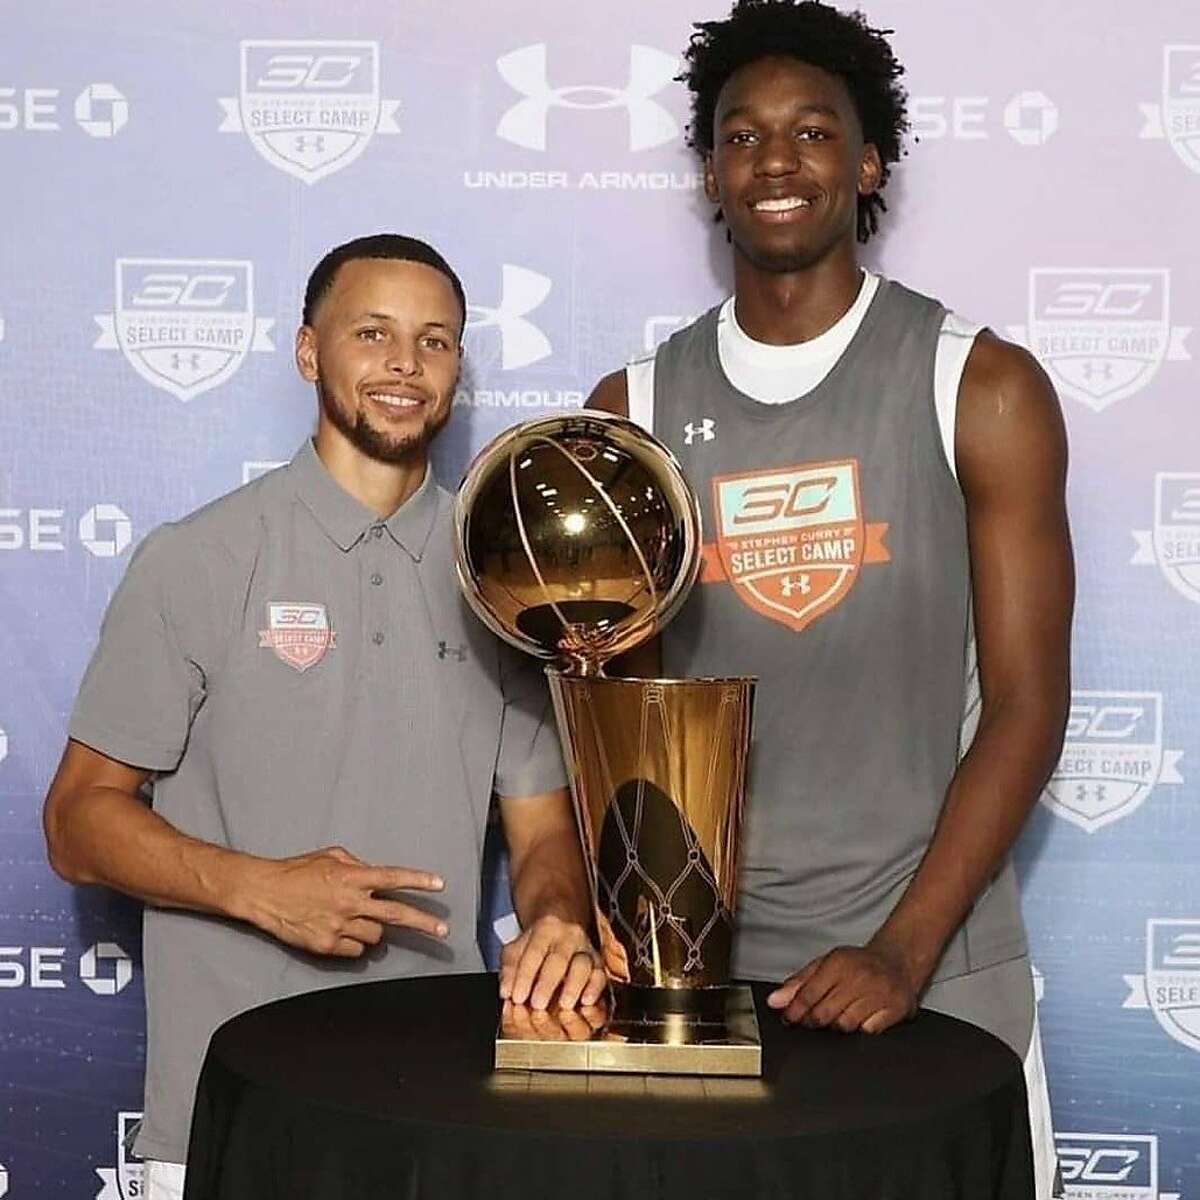 Stephen Curry poses with James Wiseman at his 2018 camp. The 7-footer is one of seven at that camp who were drafted into the NBA this year - two by the Warriors.